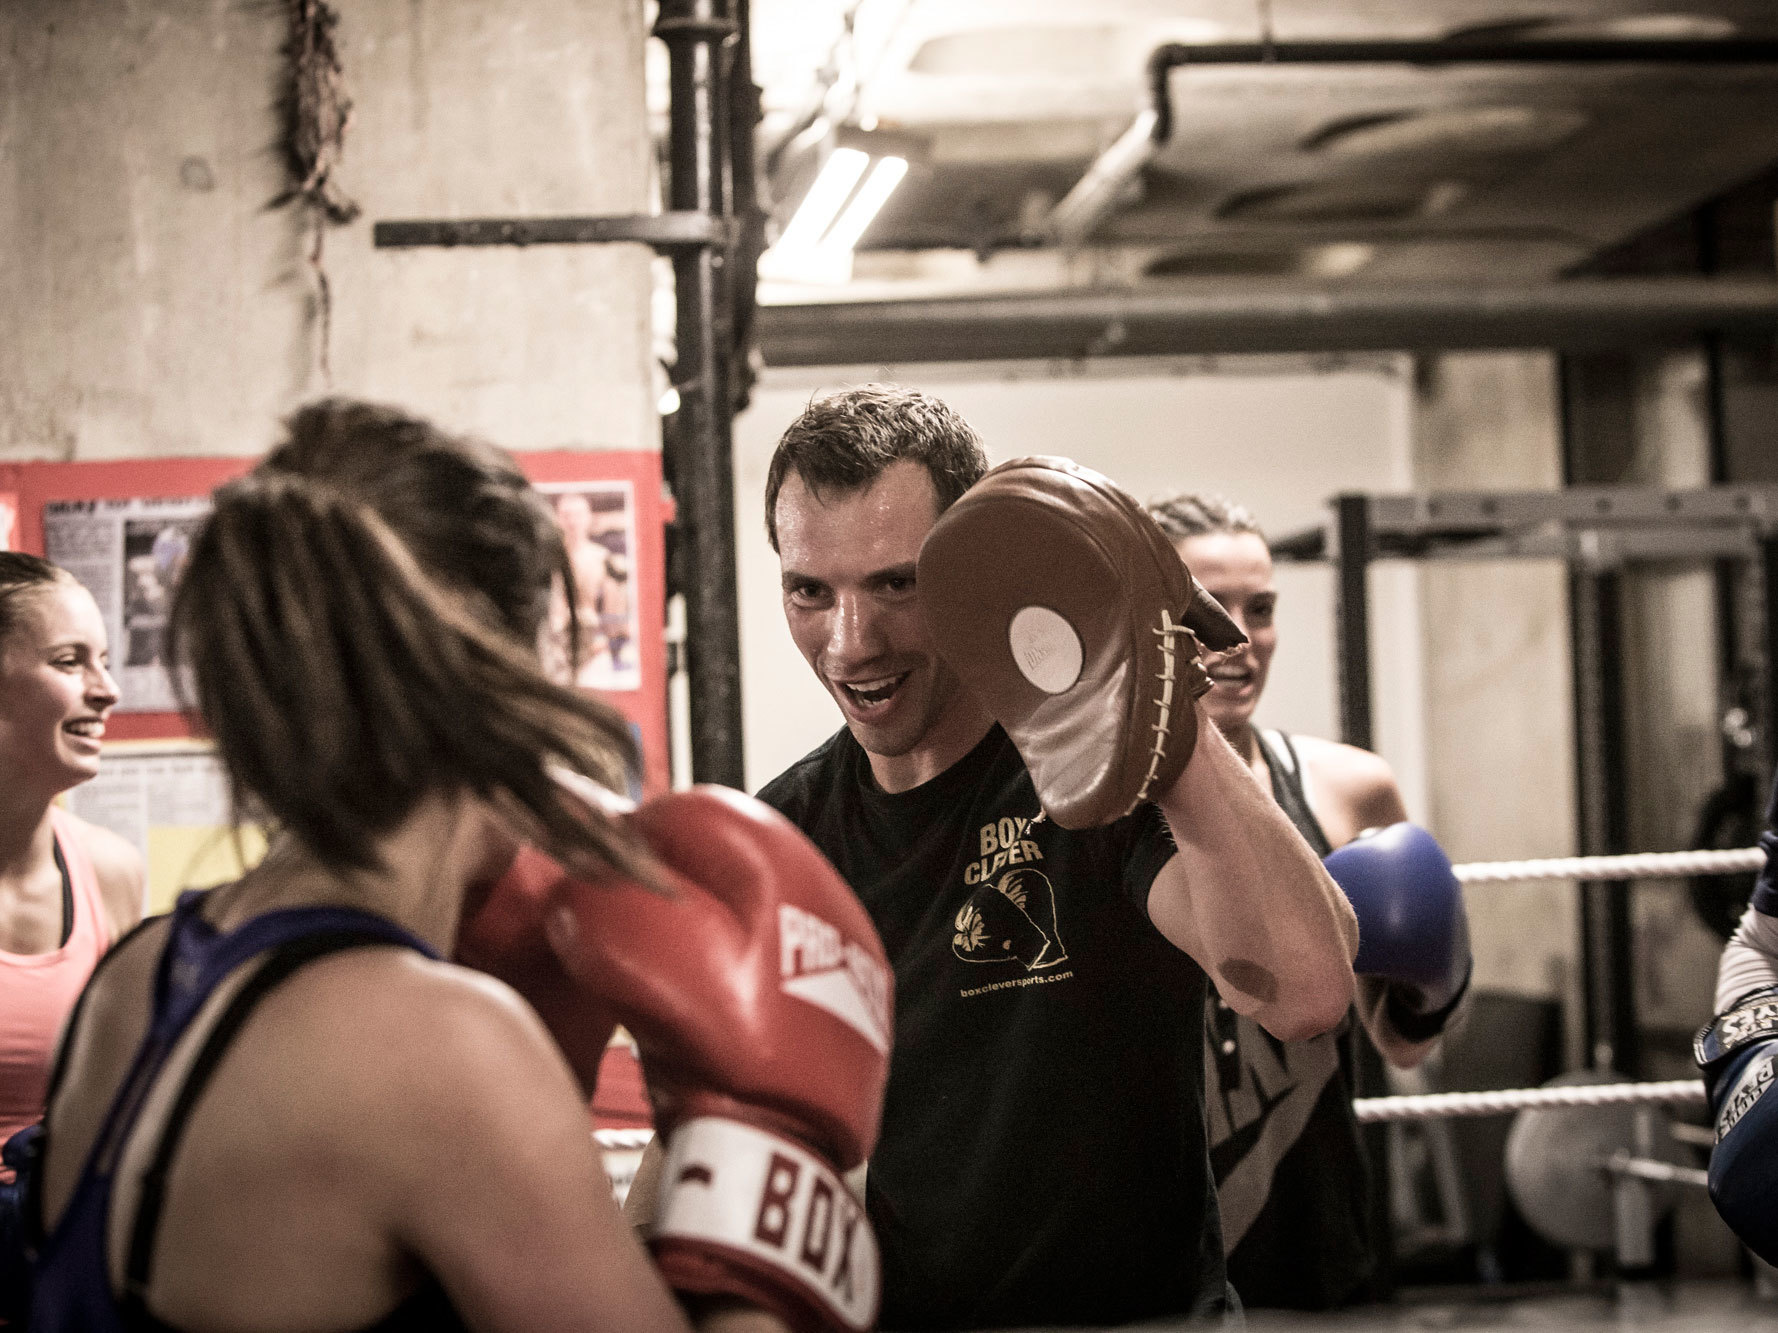 the best boxing gyms in London, box clever